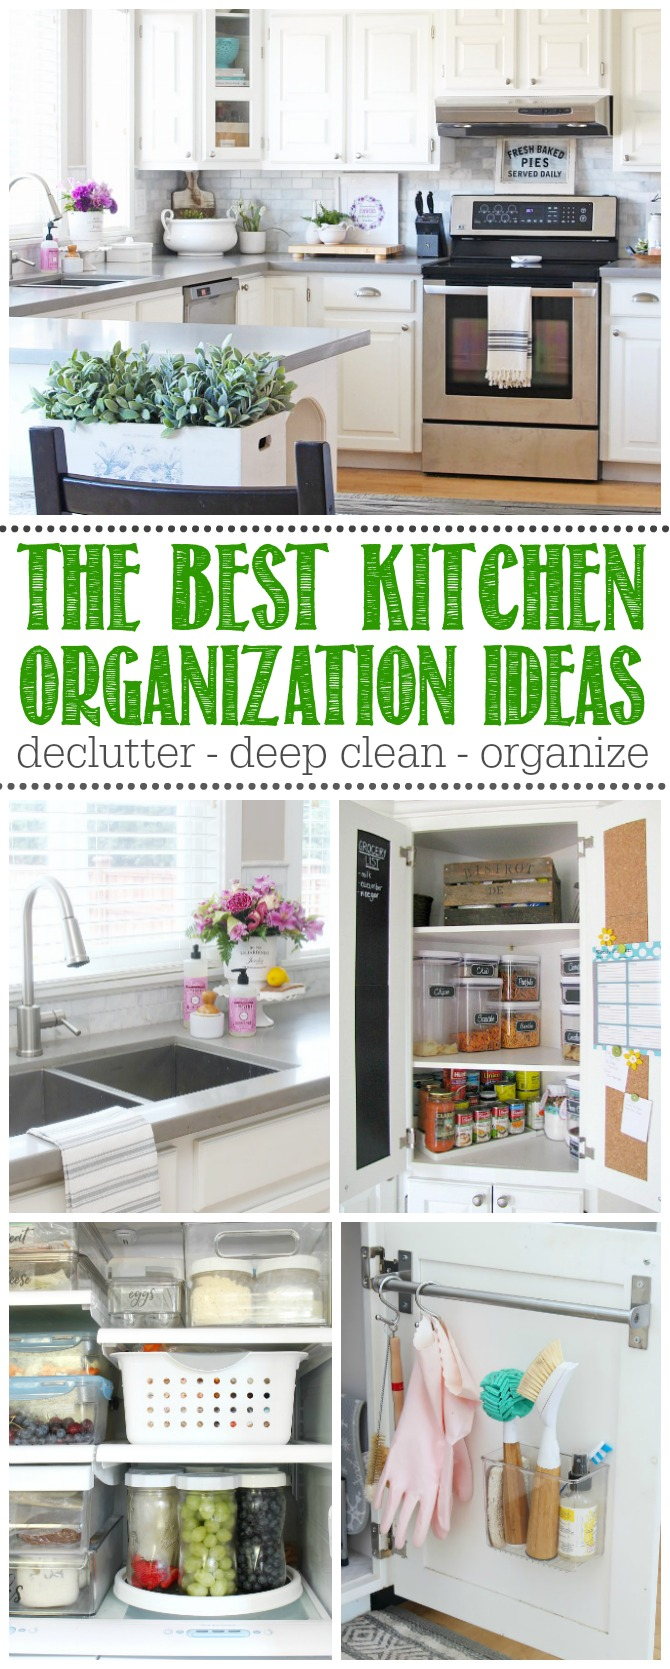 Collection of the best kitchen organization tips and ideas.